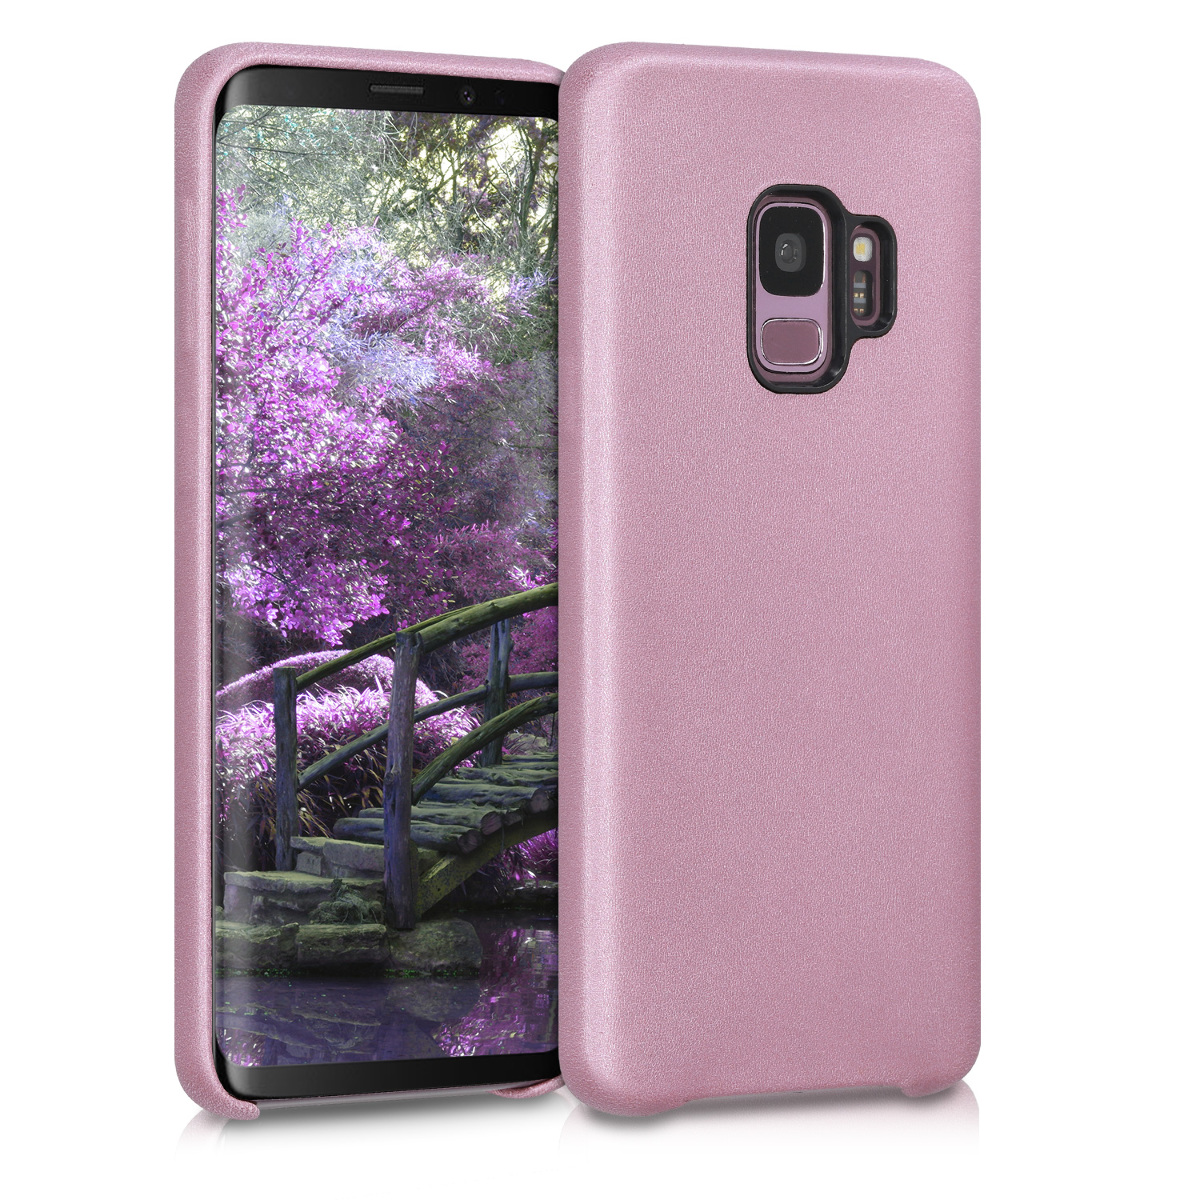 Pouzdro pro Samsung Galaxy S9 - Soft Durable Shockproof PU Leather Smartphone Cover - Pastel Purple